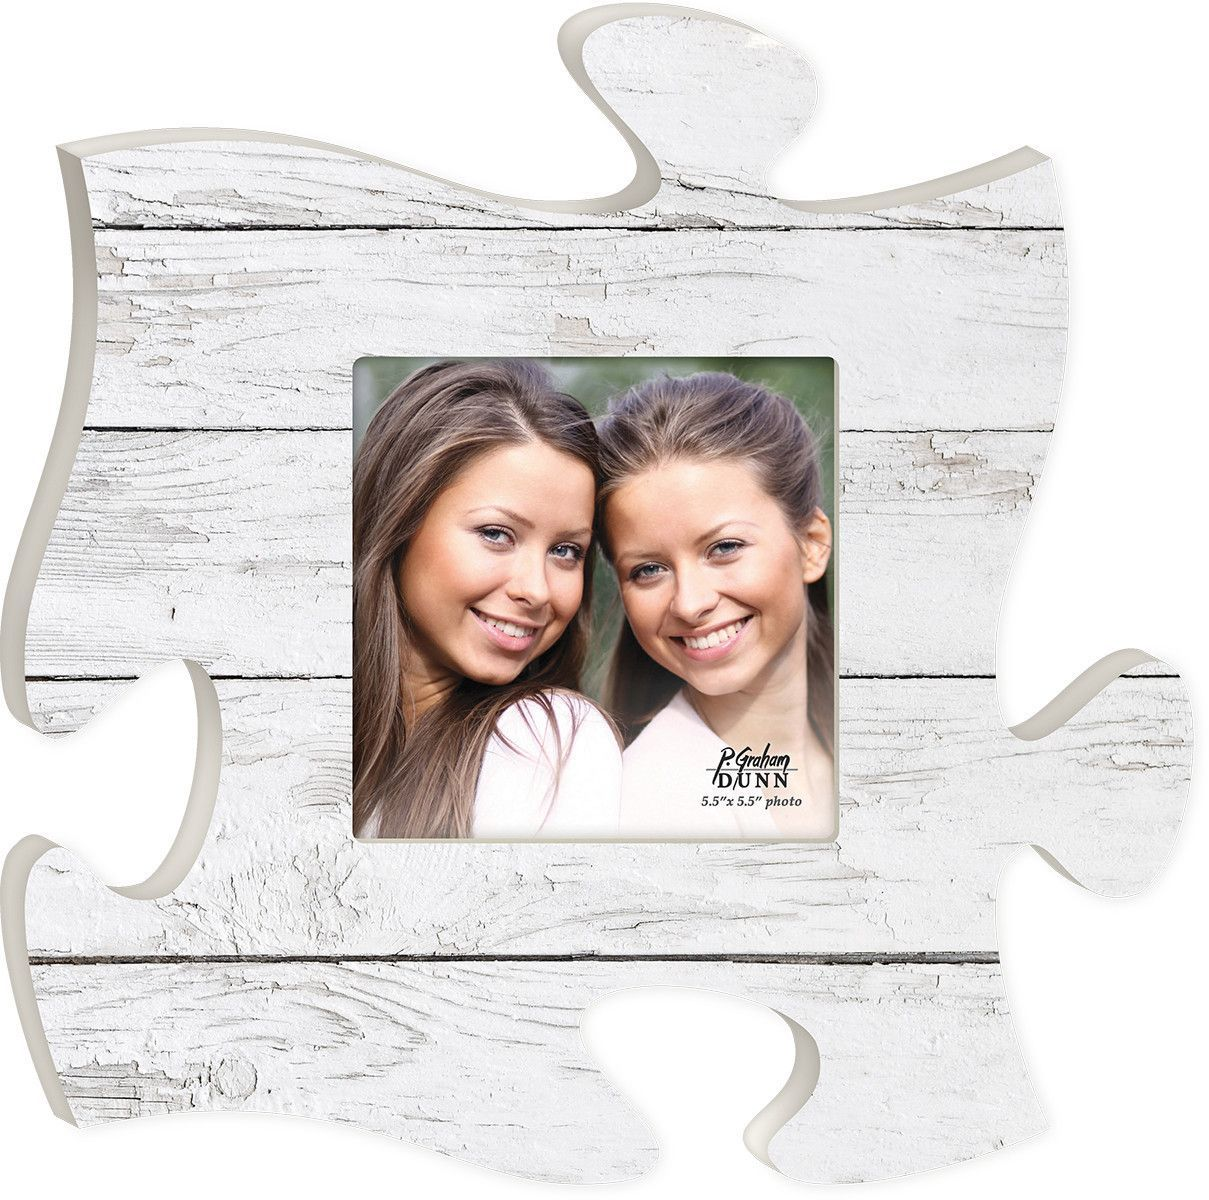 A Puzzle Photo Frame | Picture frame art